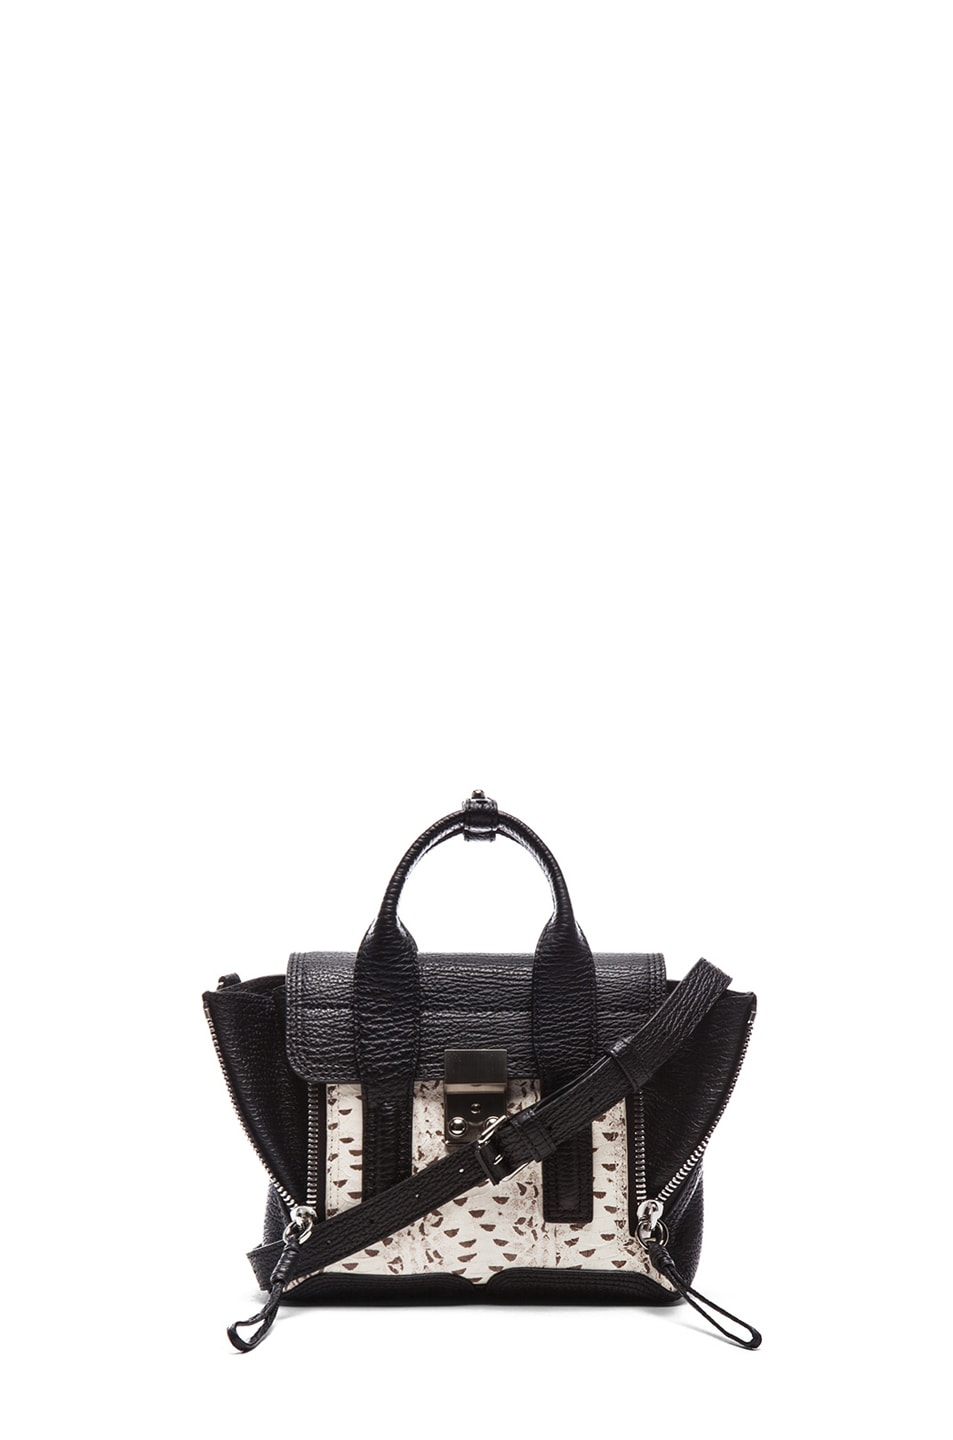 Image 1 of 3.1 phillip lim EXCLUSIVE Mini Pashli Satchel in White & Black